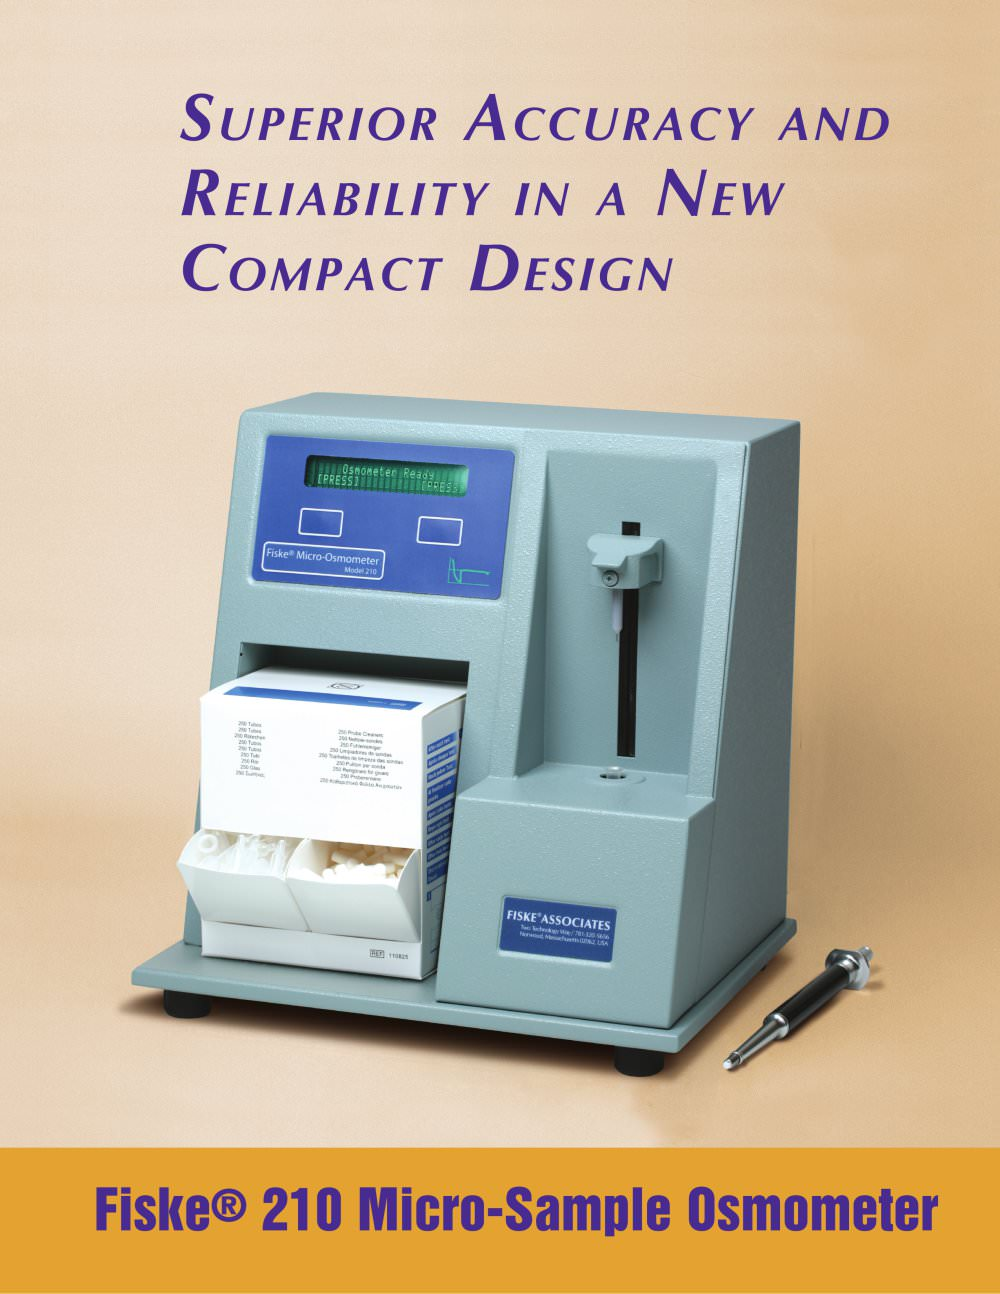 Fiske® 210 Micro-Sample Osmometer - 1 / 4 Pages